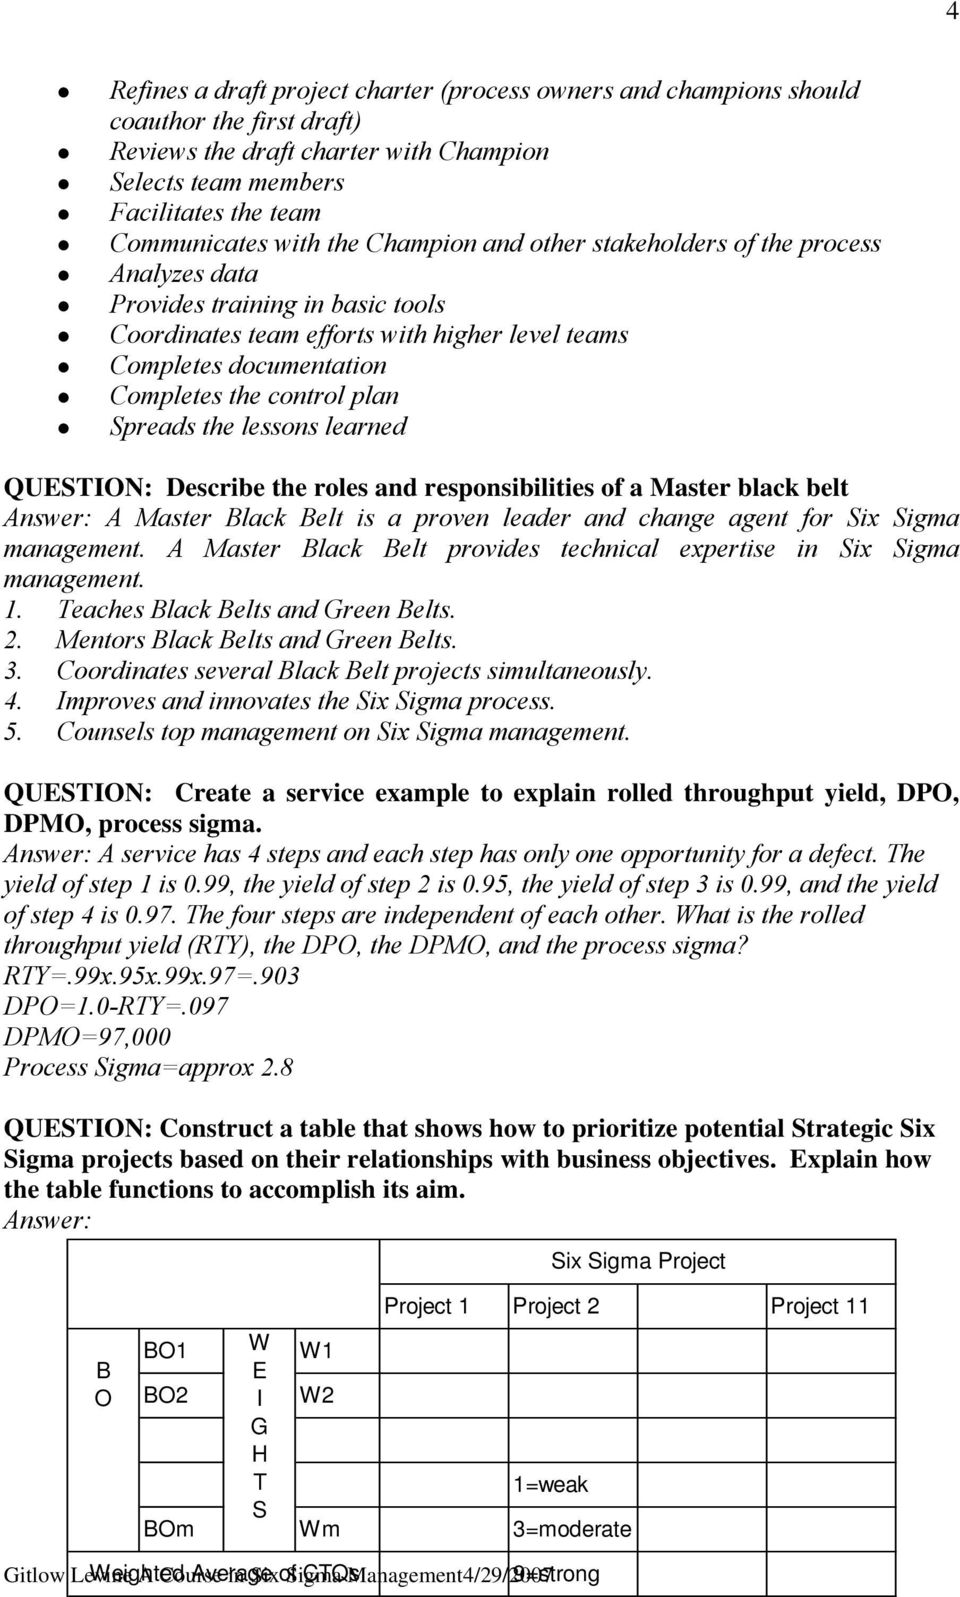 rols and rsponsibilitis of a Mastr black blt A Mastr Black Blt is a provn ladr and chang agnt for Six Sigma managmnt. A Mastr Black Blt provids tchnical xprtis in Six Sigma managmnt.